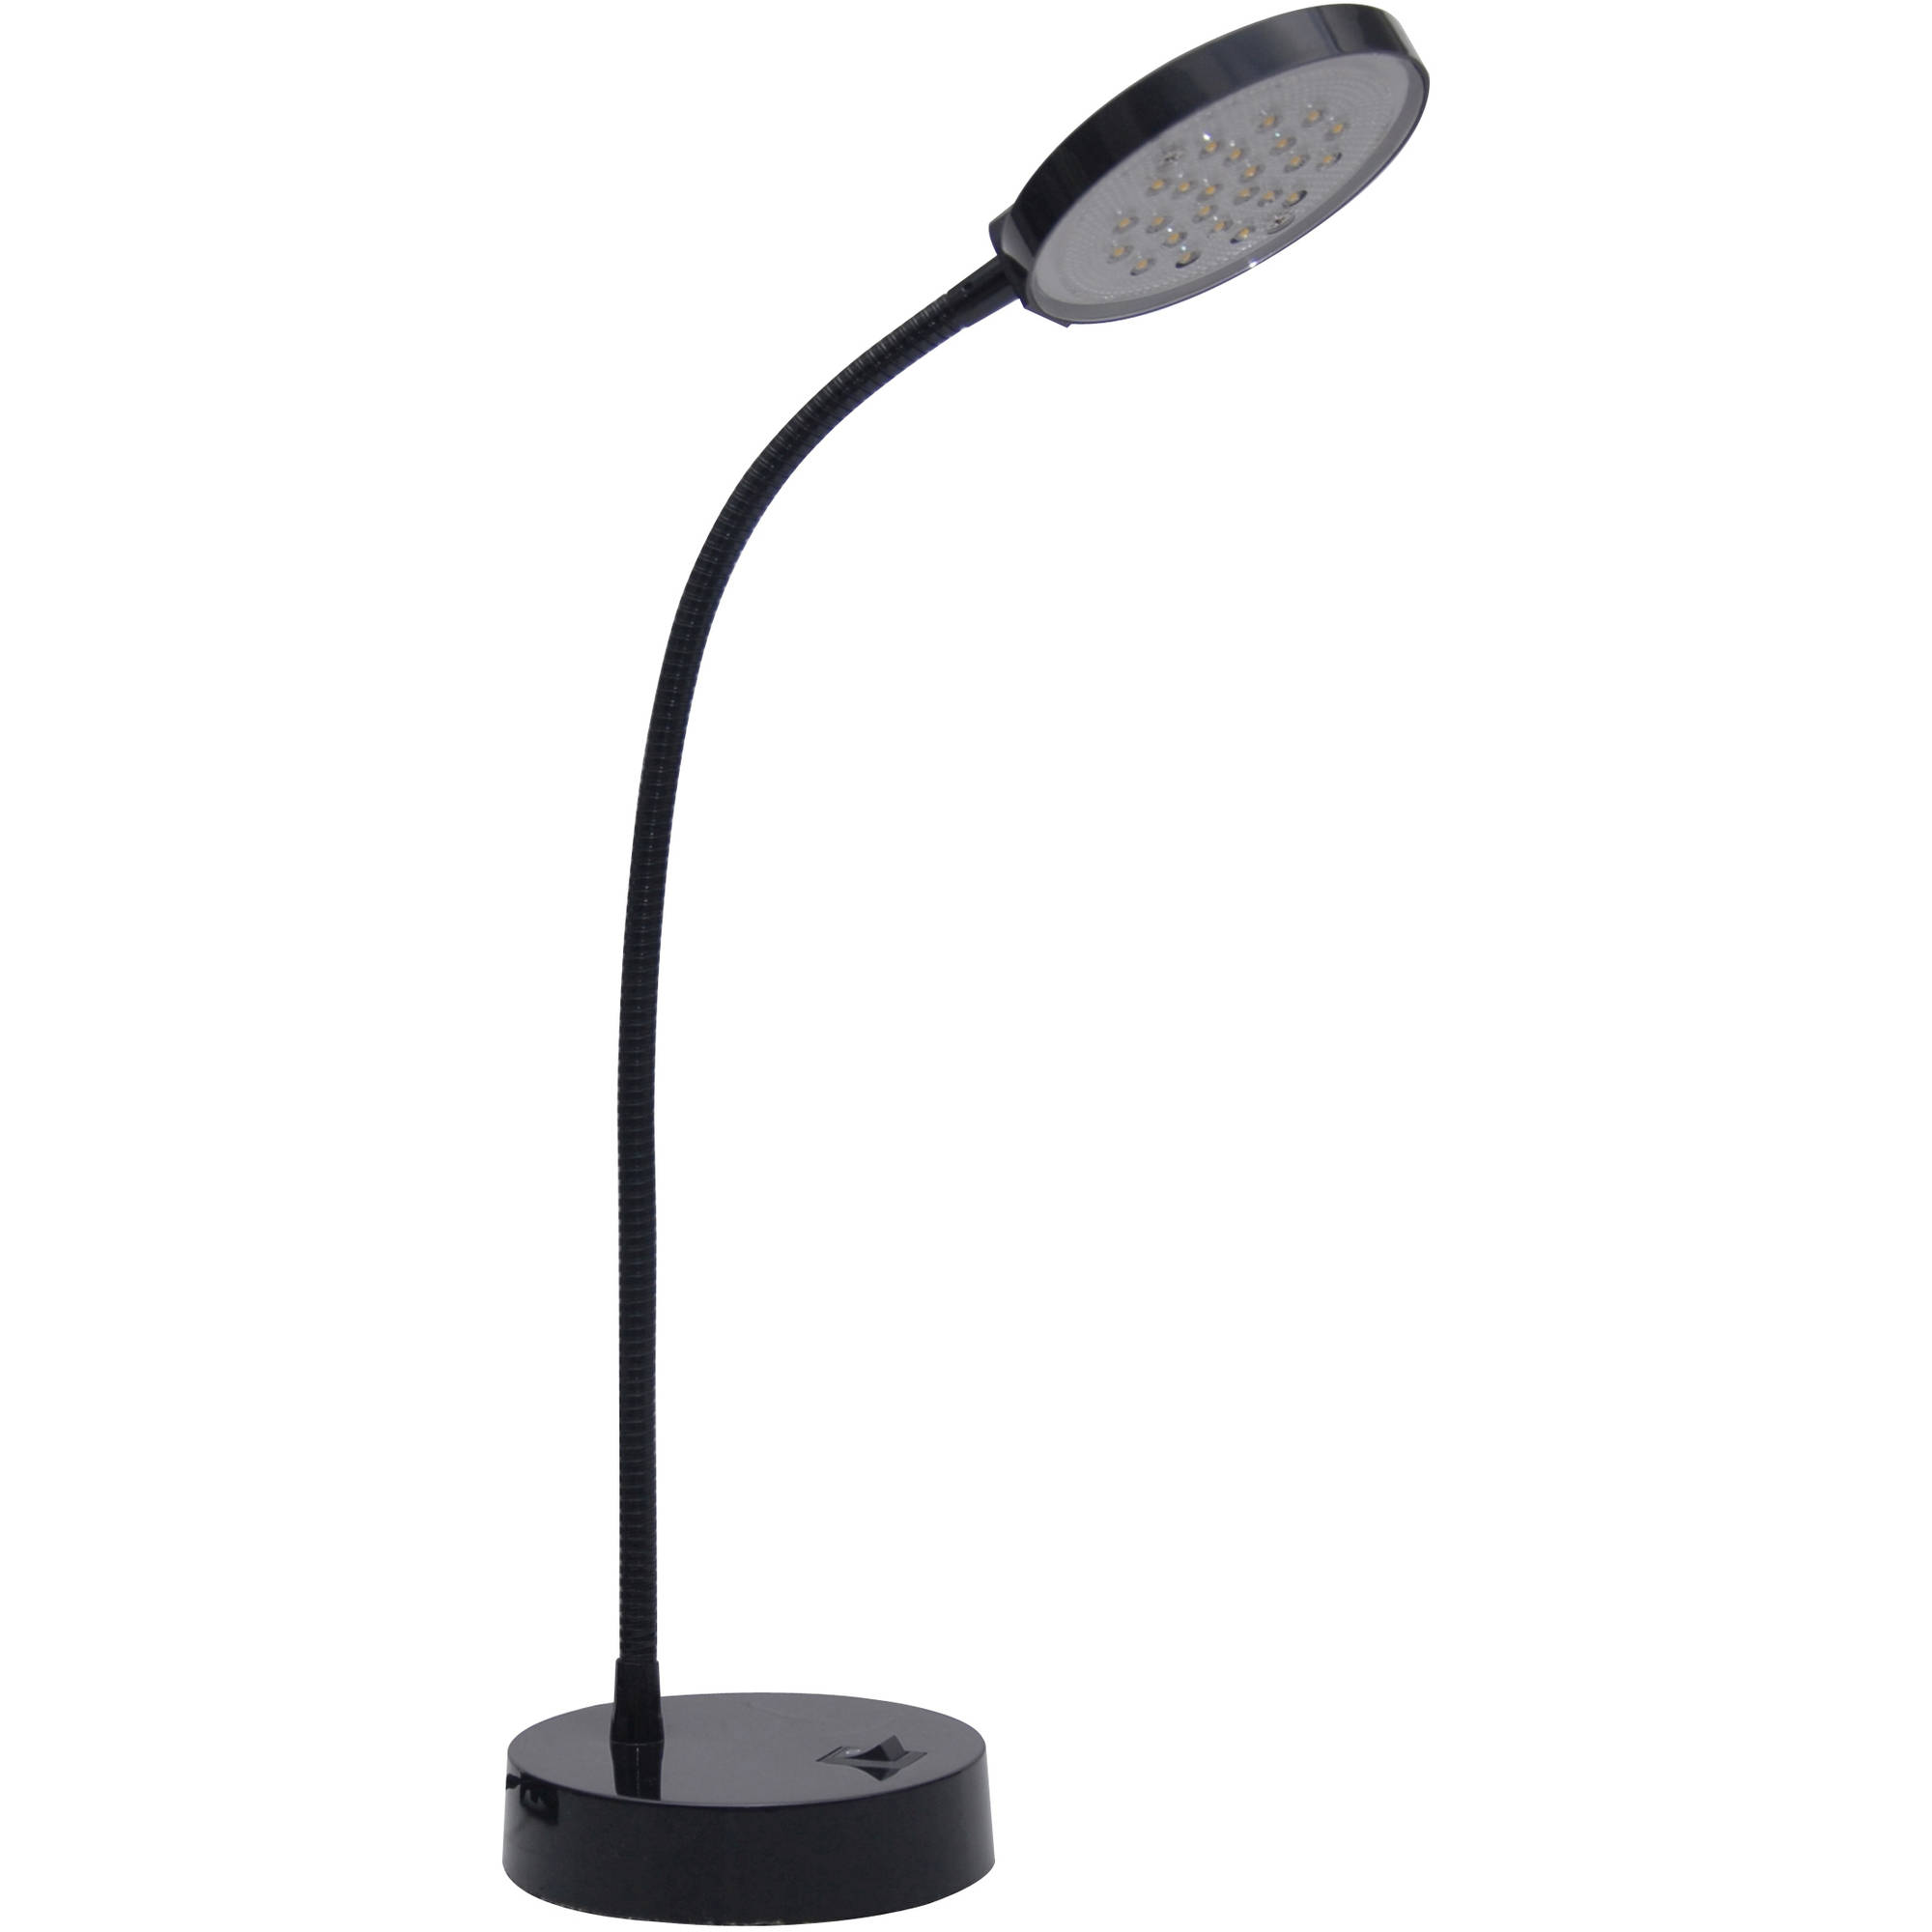 Mainstays 1375 led desk lamp black finish walmart mozeypictures Gallery